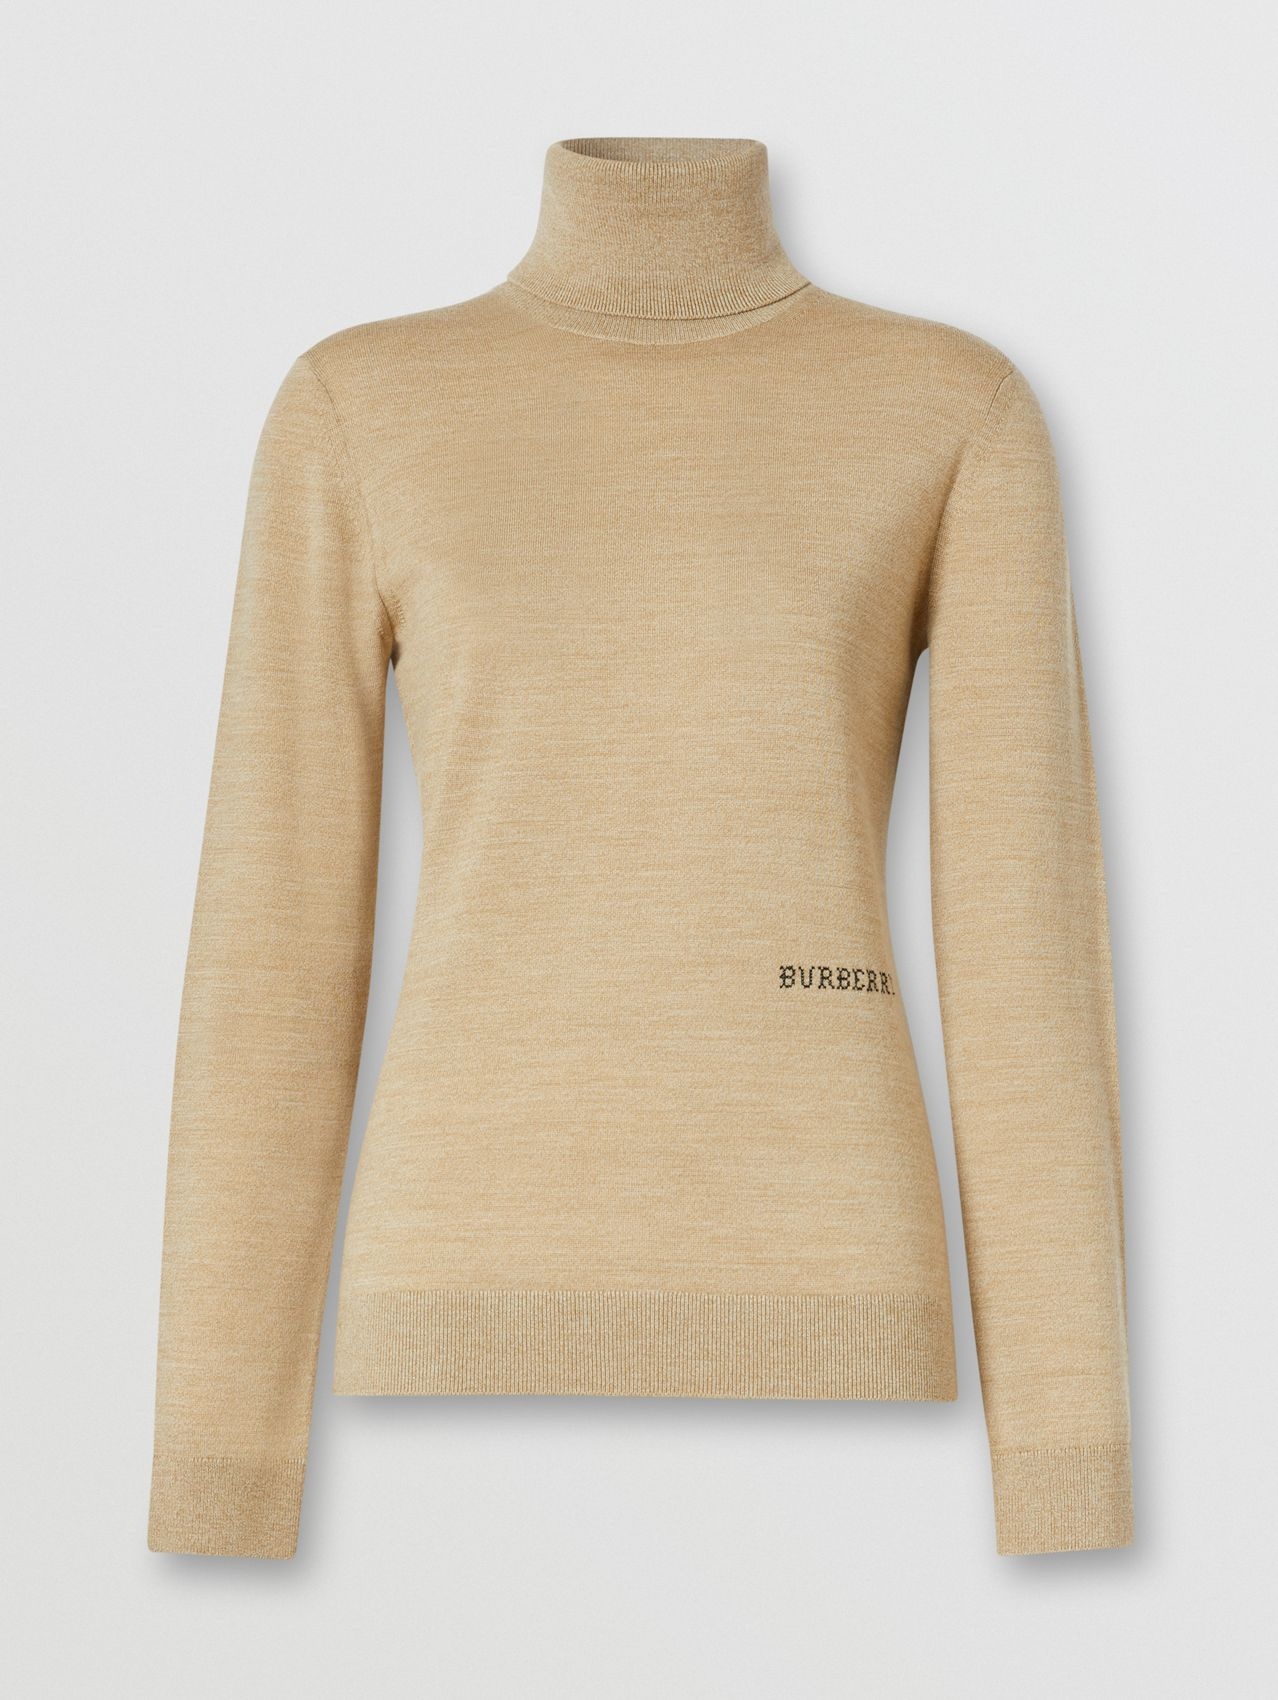 Two-tone Merino Wool Silk Roll-neck Sweater in Camel